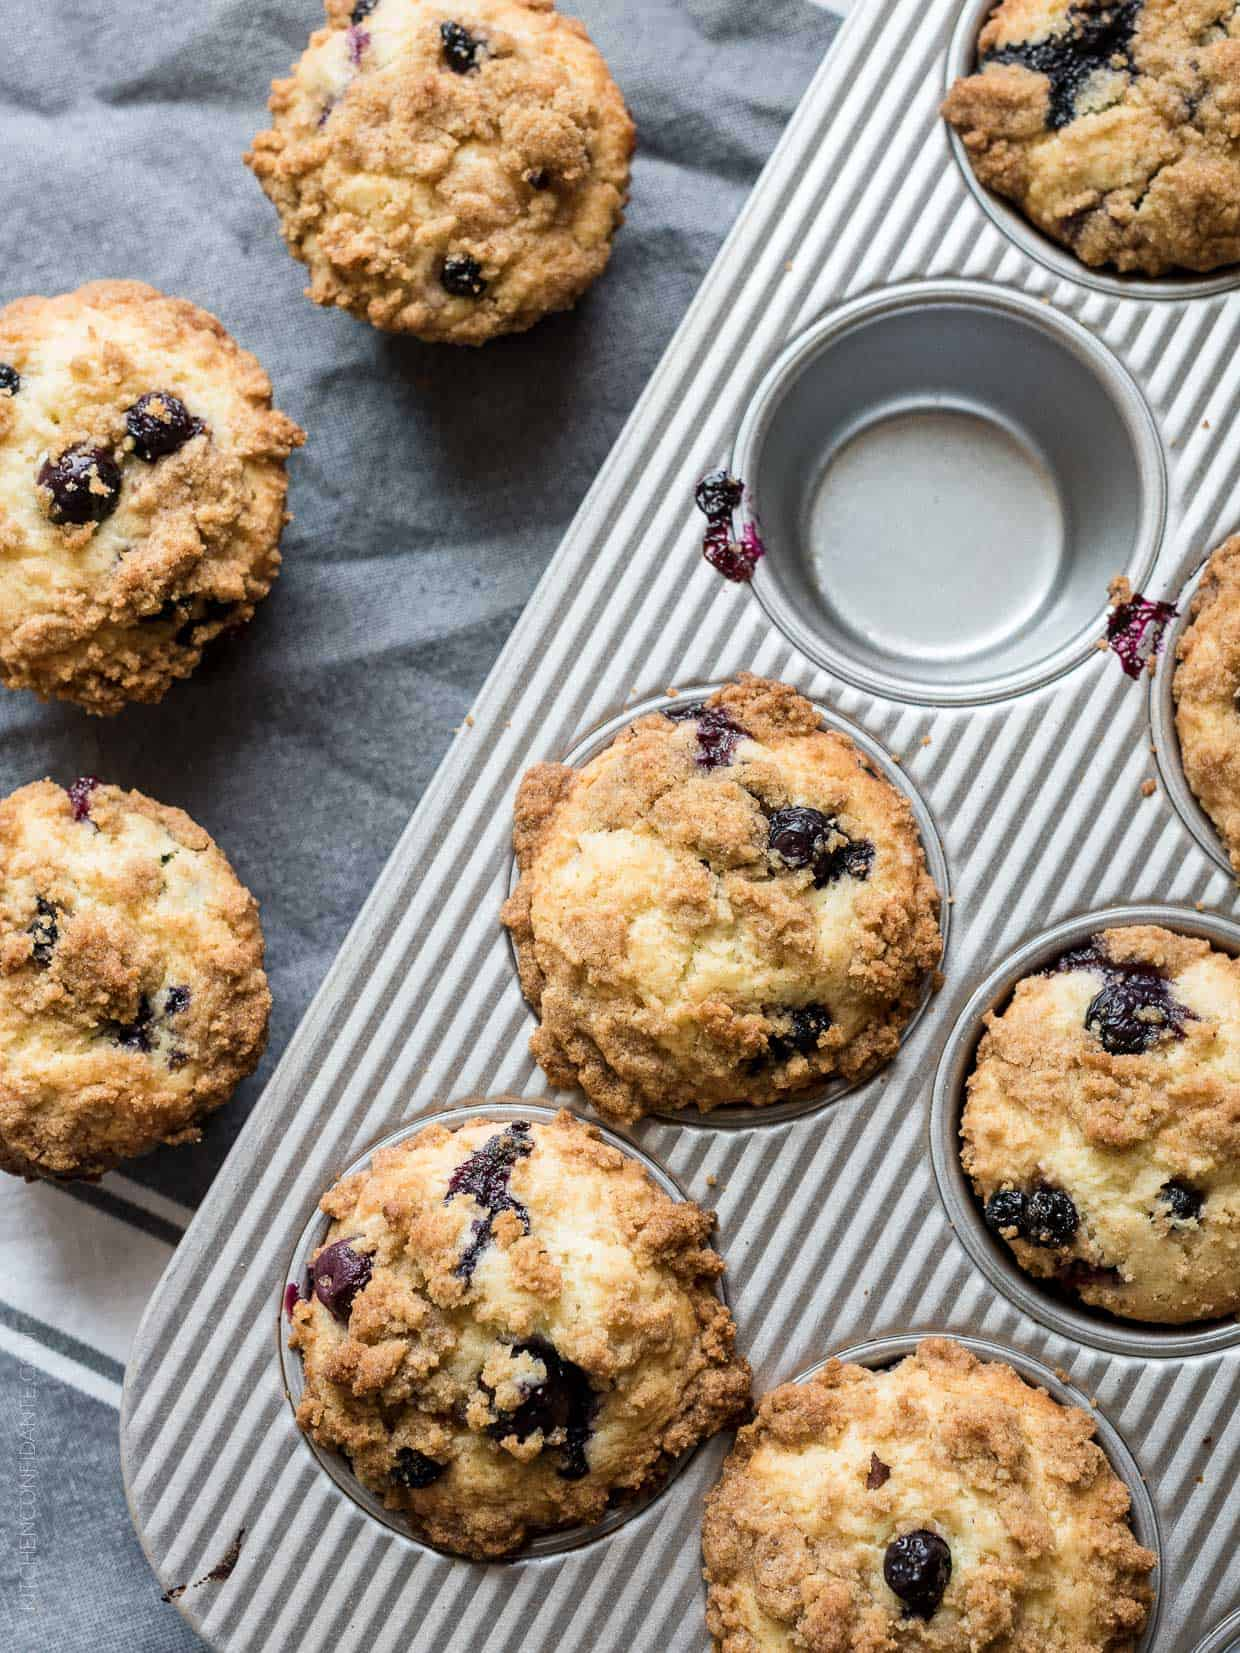 Bakery Style Buttermilk Blueberry Muffins - bake a batch of muffins that will rival the ones that tempt you at the coffee shop!